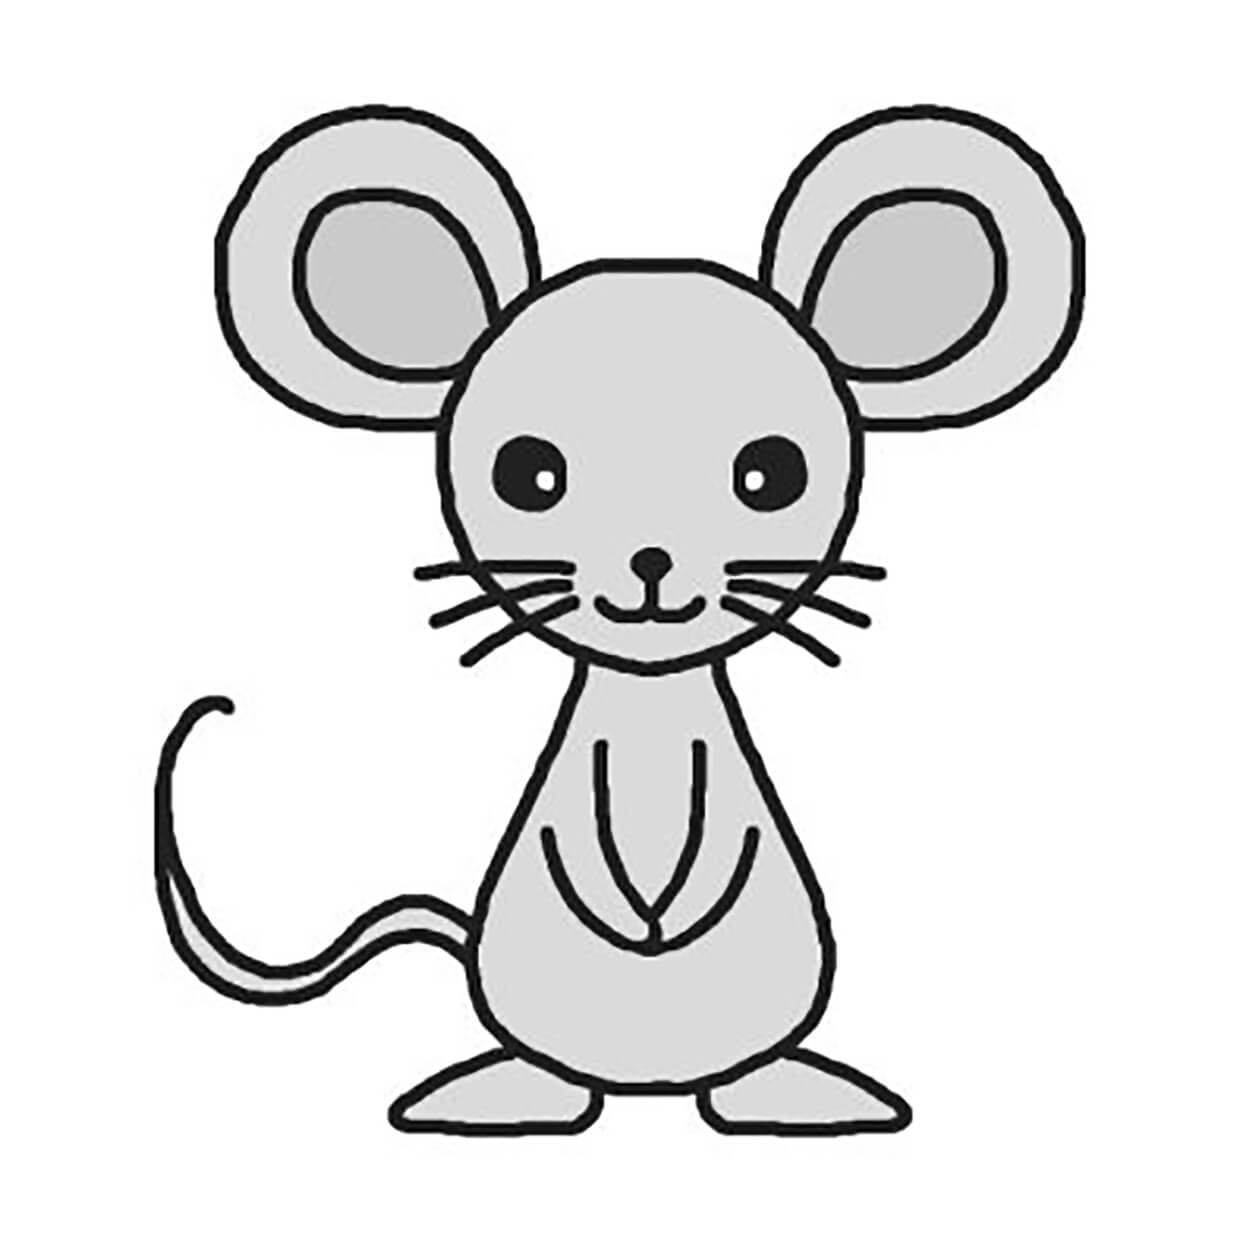 Mouse picture for children 9